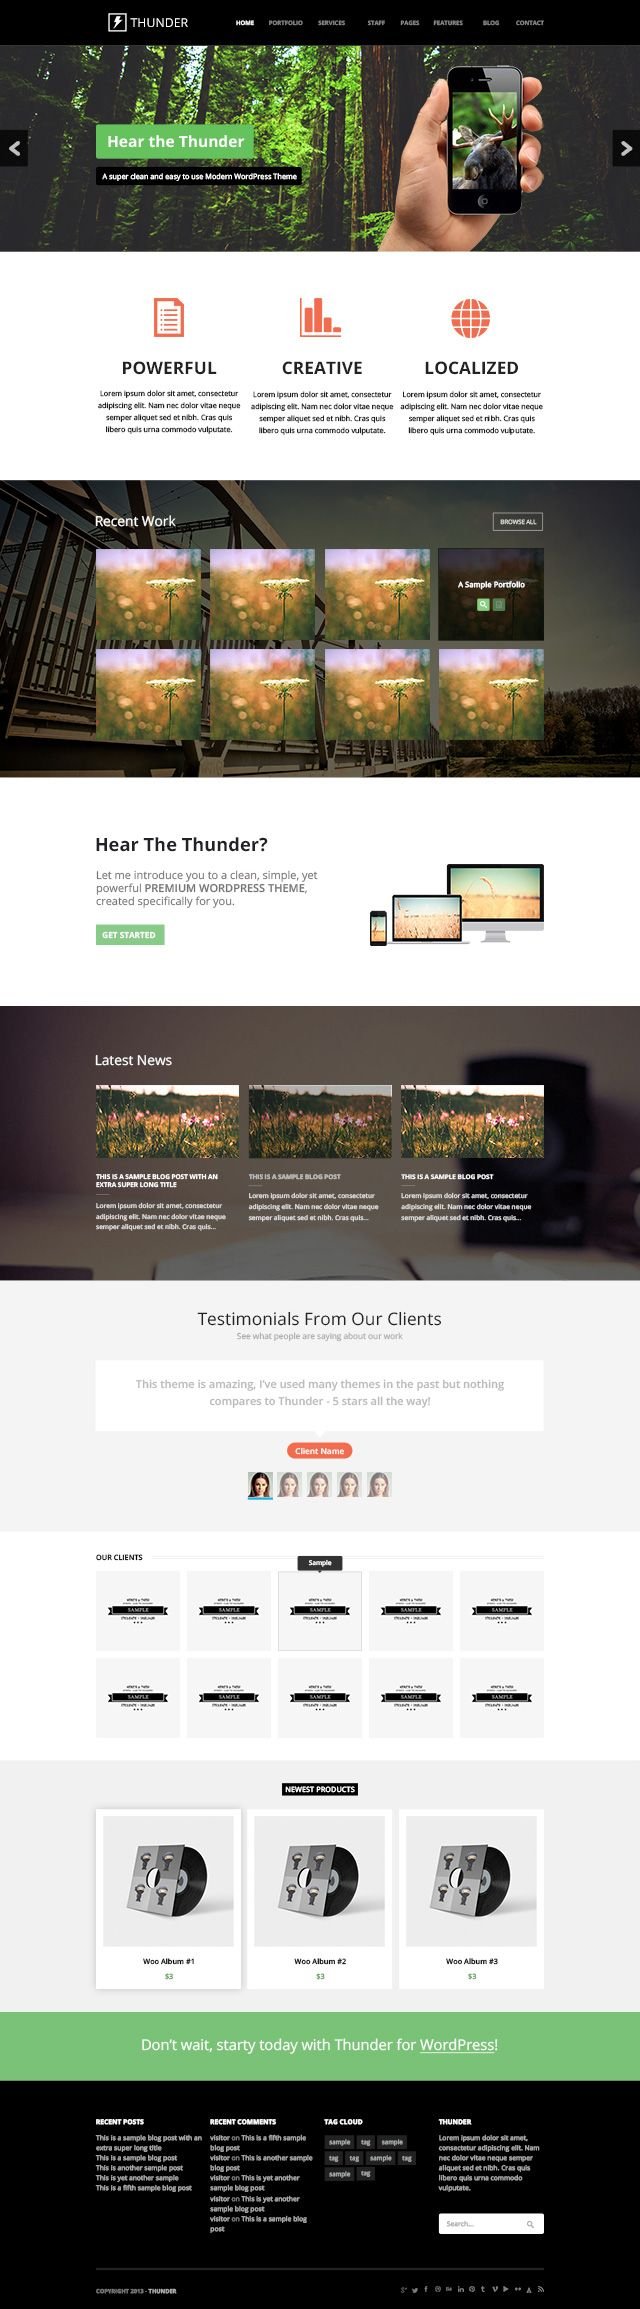 647 best Free psd template webdesign / Website images on Pinterest ...